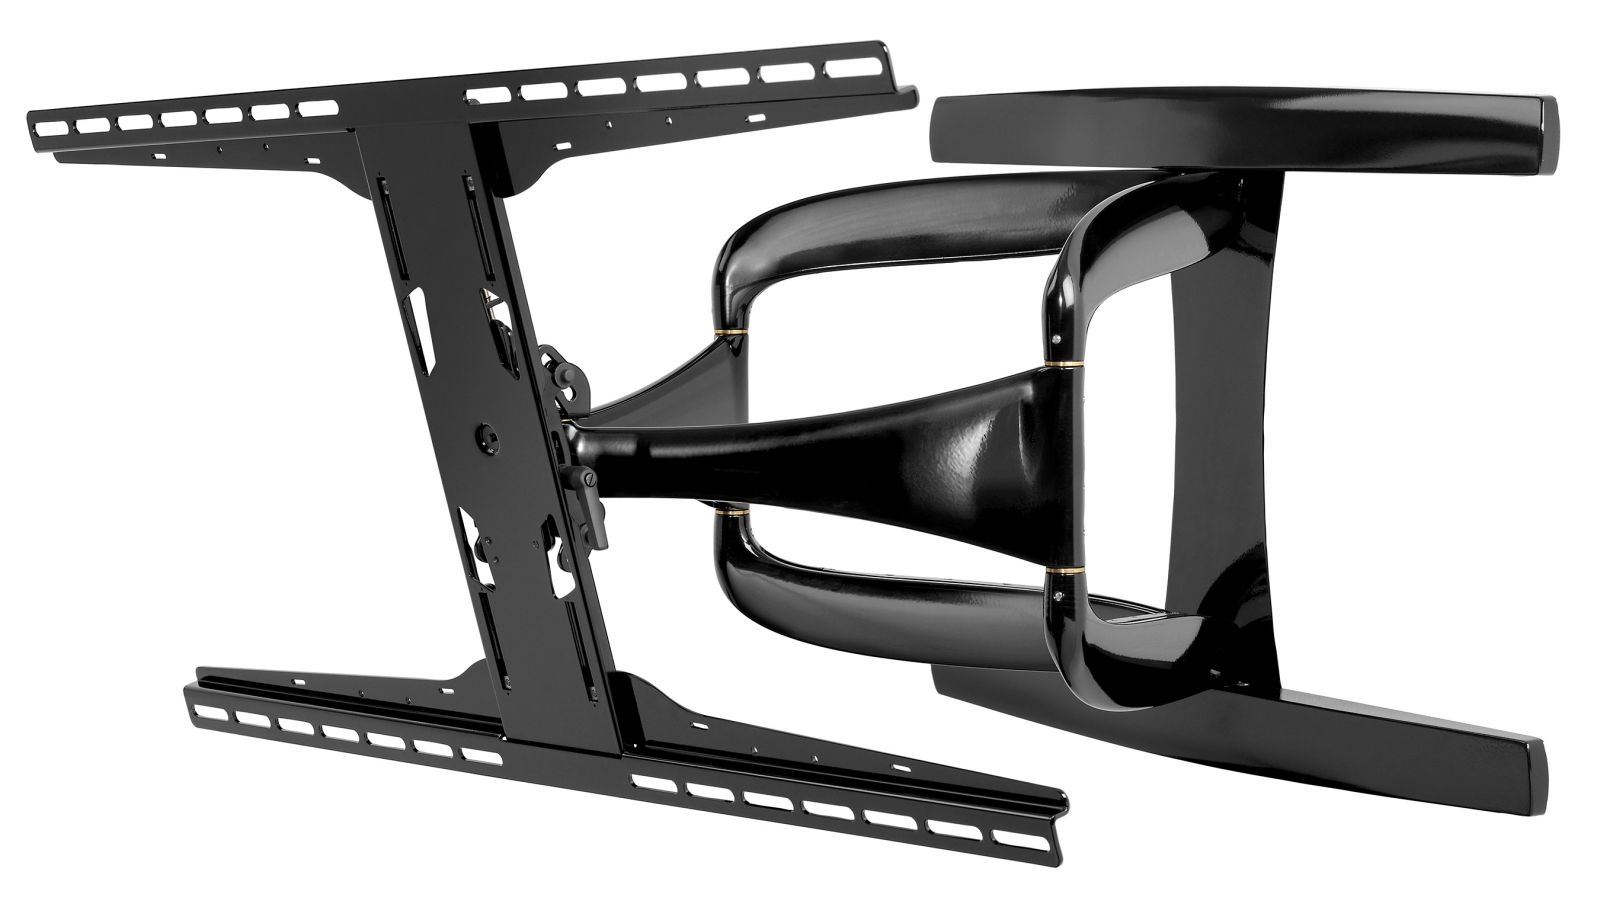 Peerless-AV® DesignerSeries™ Universal Ultra Slim Articulating Wall Mount (SUA771PU)